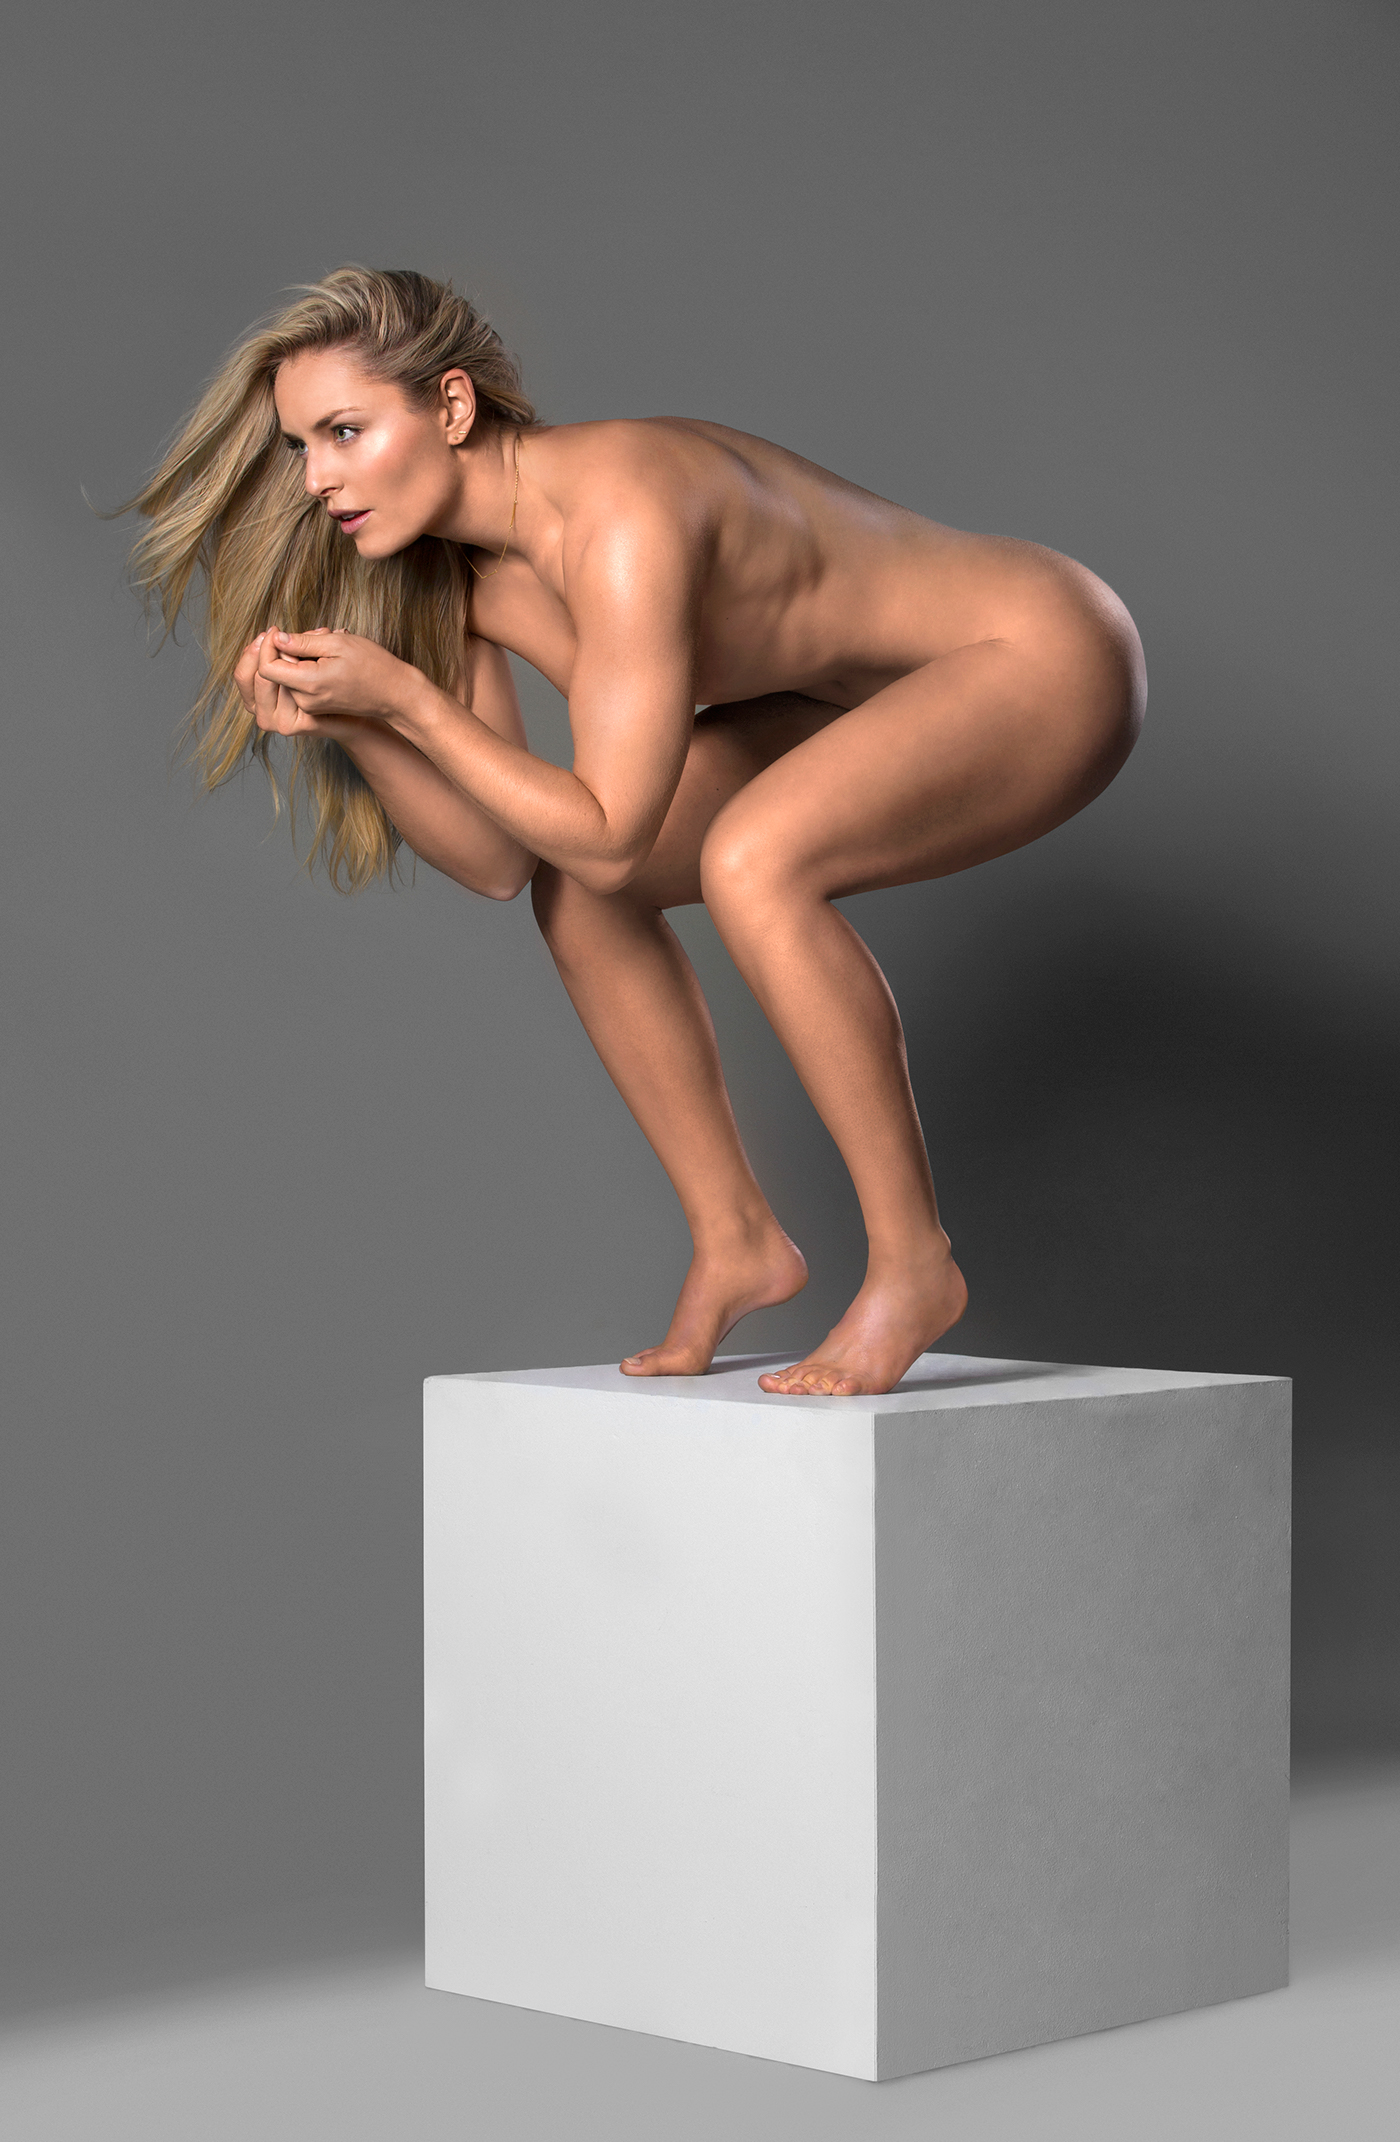 Ski racing champion lindsey vonn poses nude for new book